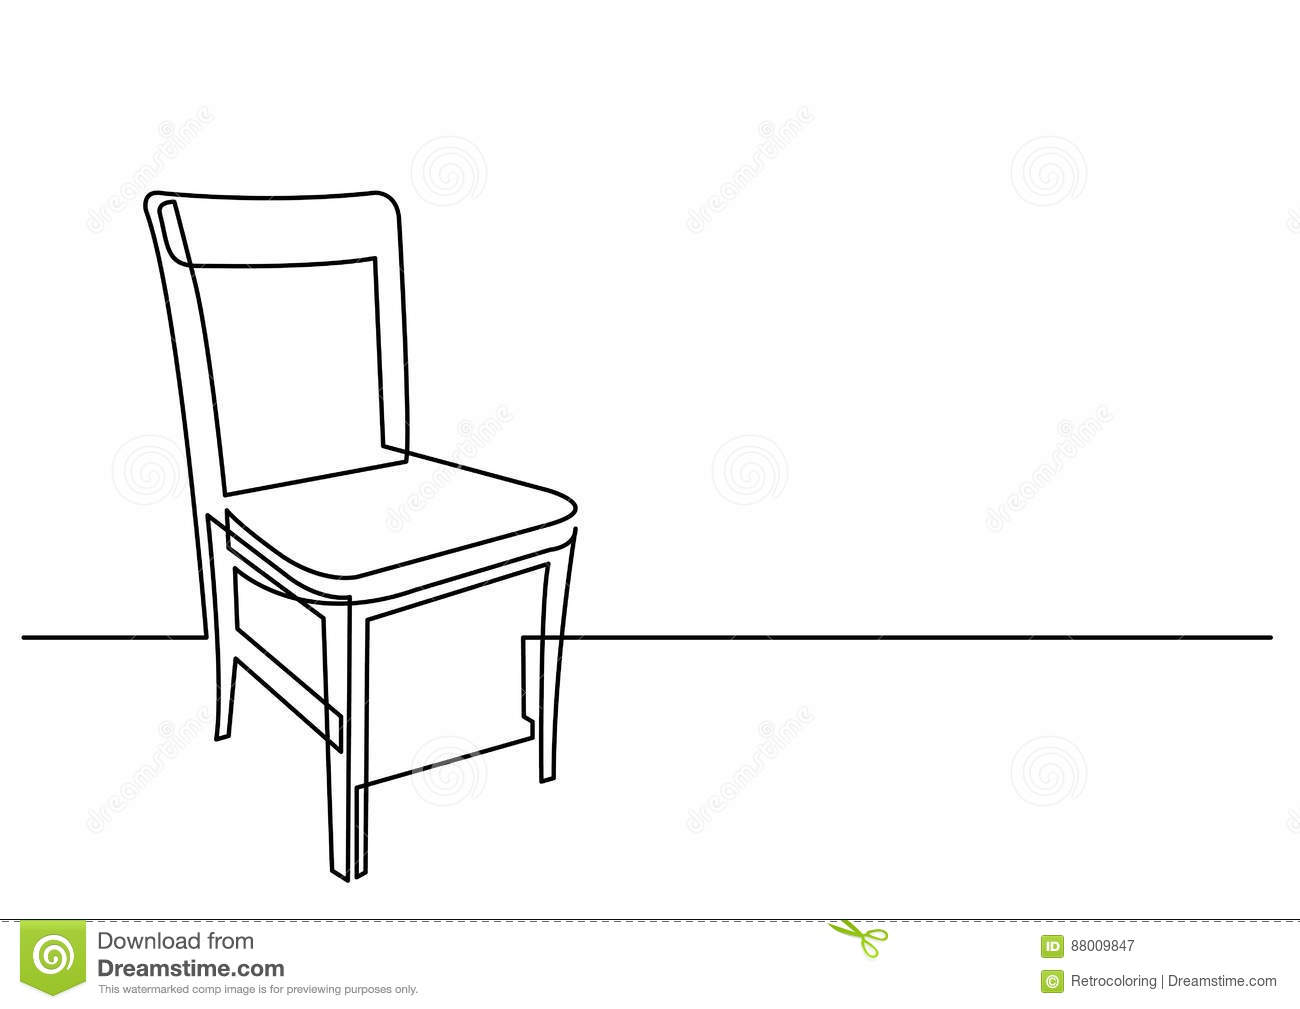 chair drawing easy. Download Continuous Line Drawing Of Chair Stock Vector - Illustration Kitchen, Item: 88009847 Easy